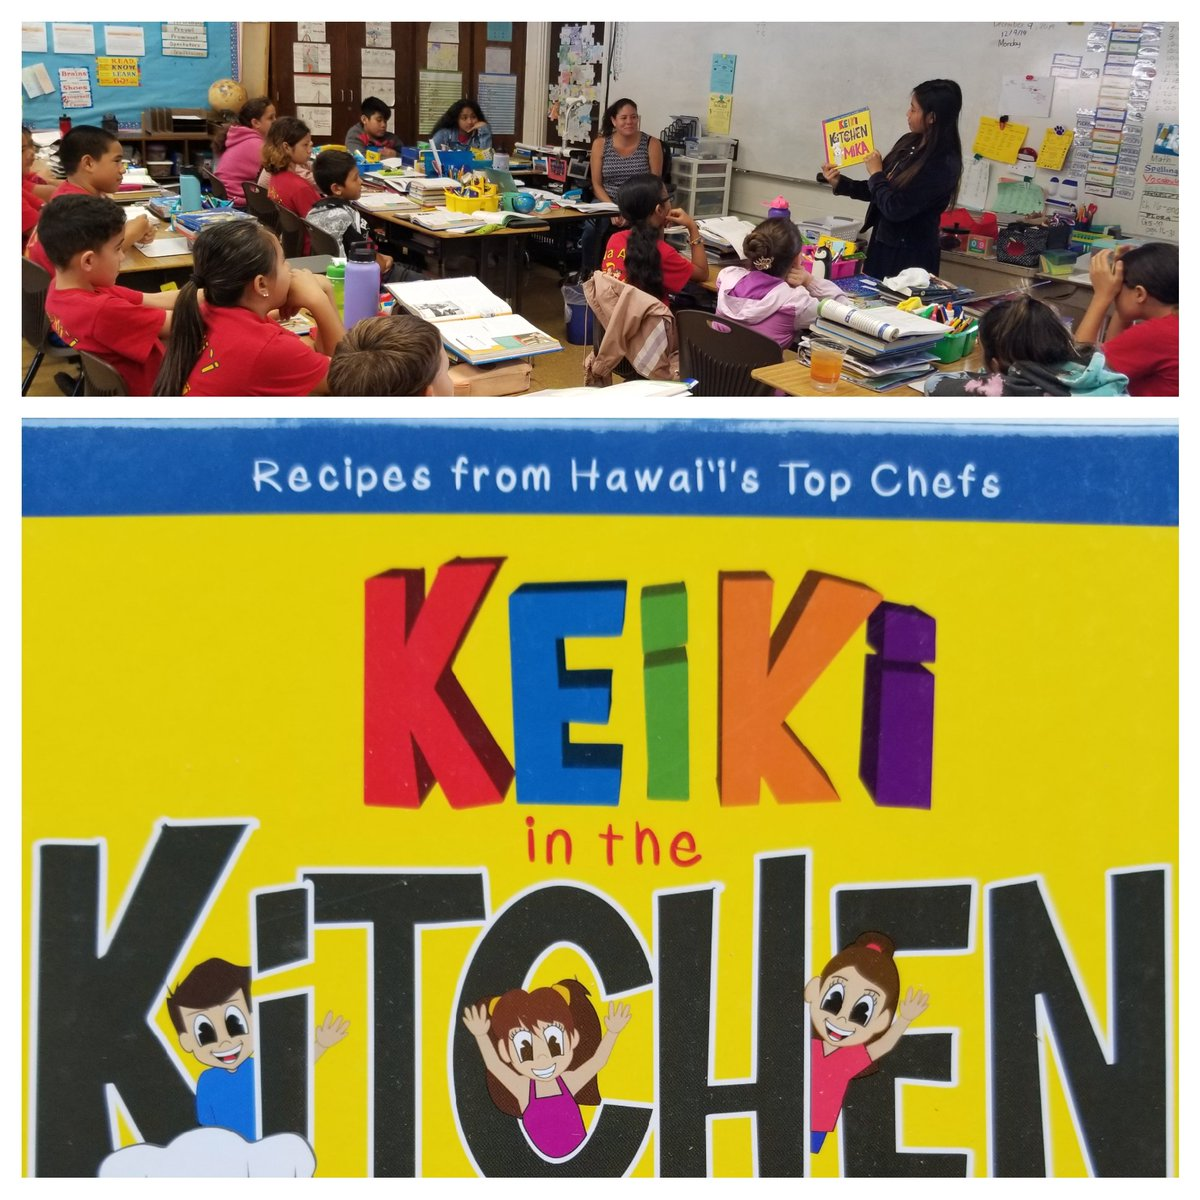 Mahalo Hawai'i Agriculture Foundation for sharing your cookbook with our keiki and their families!  #WhereDoesYourFoodComeFrom #LocalAgriculture #Sustainability @CASKeone @HIDOE808pic.twitter.com/i2oZ51IWn8